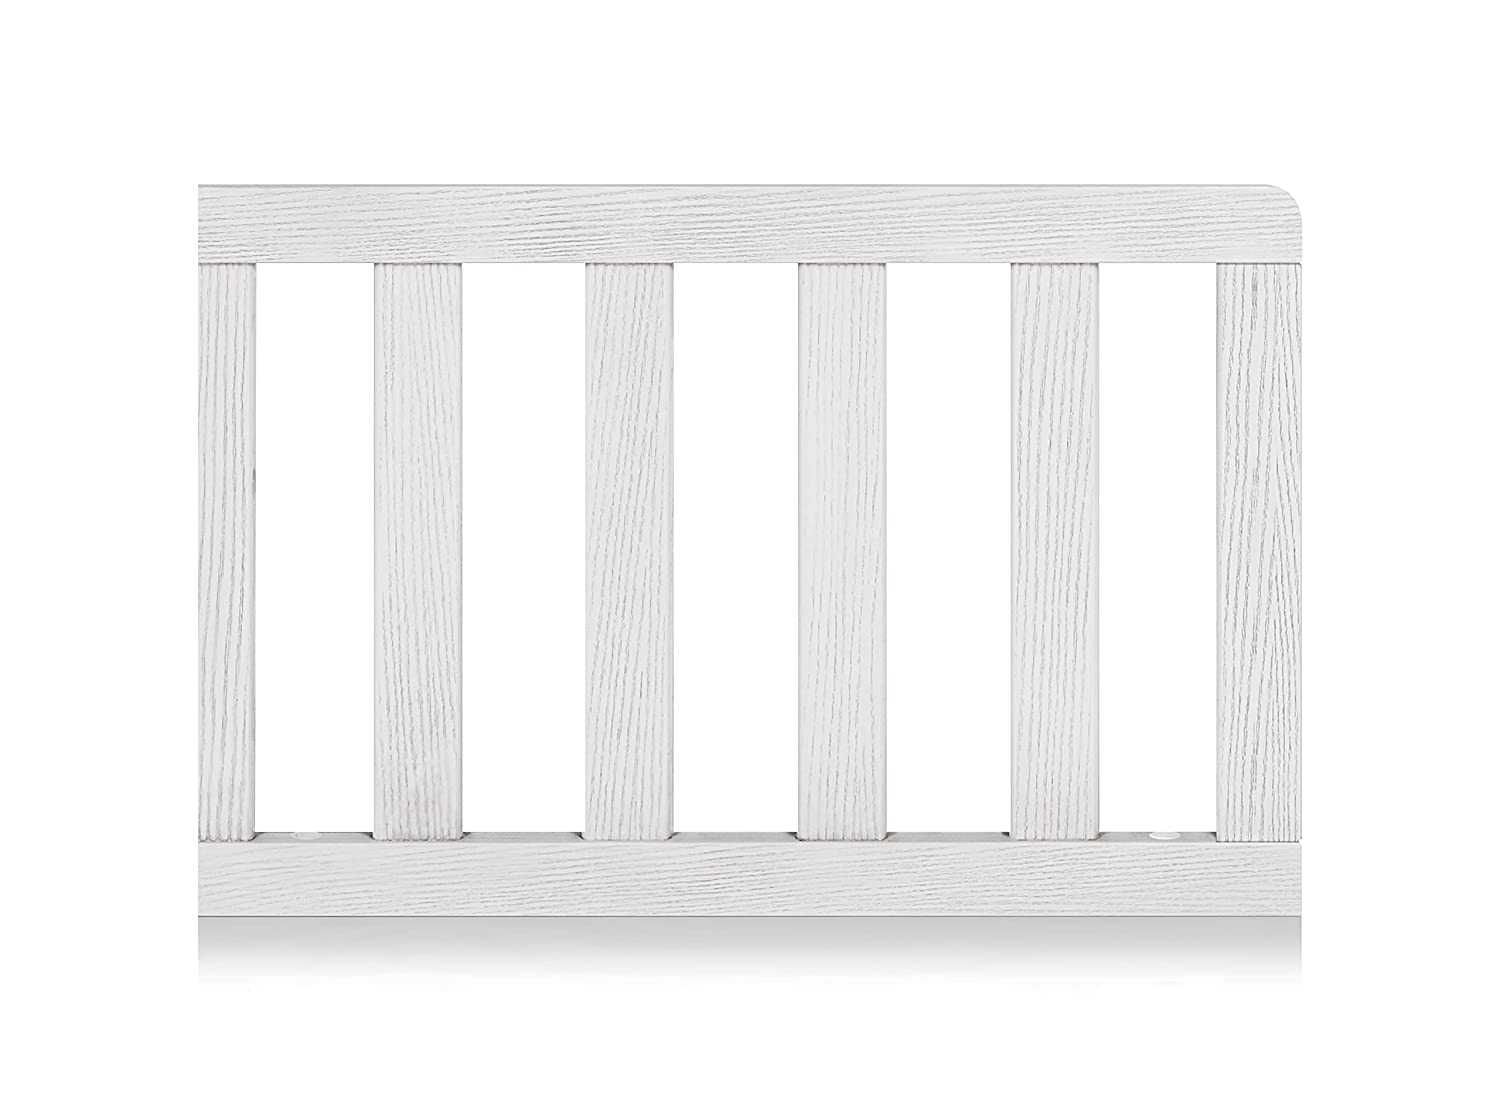 Suite Bebe Barnside Toddler Guard Rail in Washed Gray (27275-WGY)